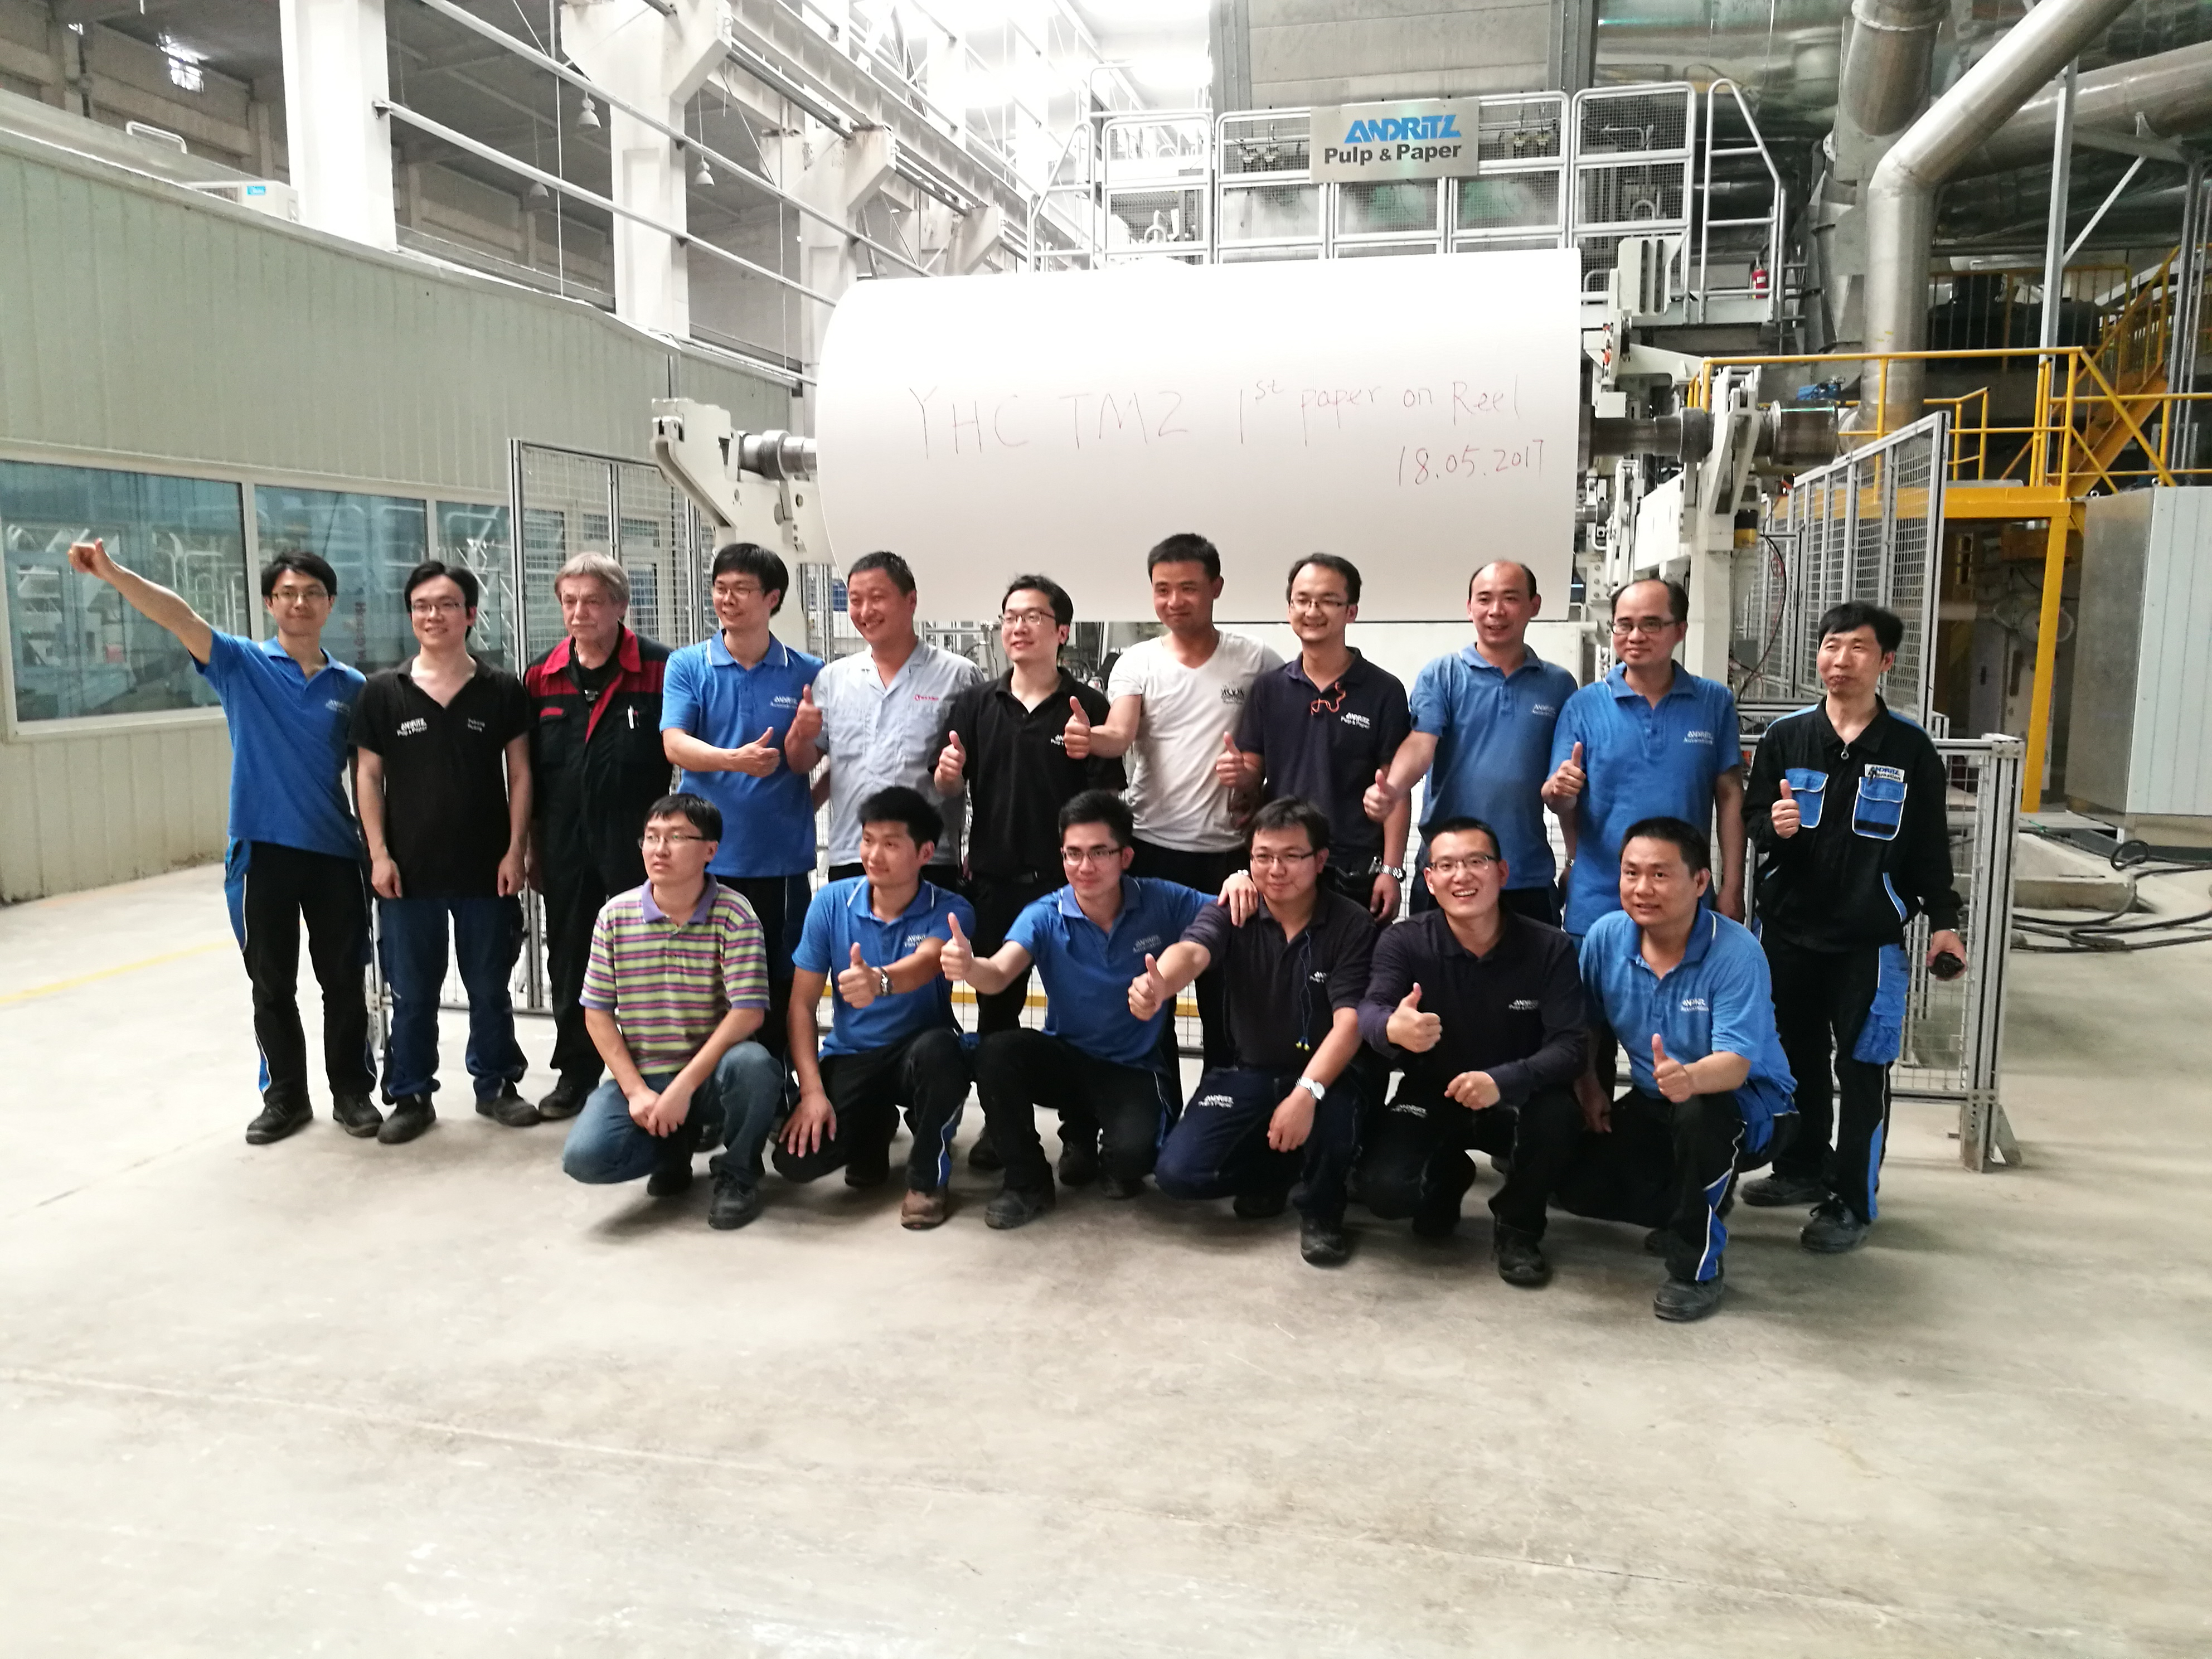 The start-up teams of Hebei Yihoucheng and Andritz celebrate the first paper on reel.